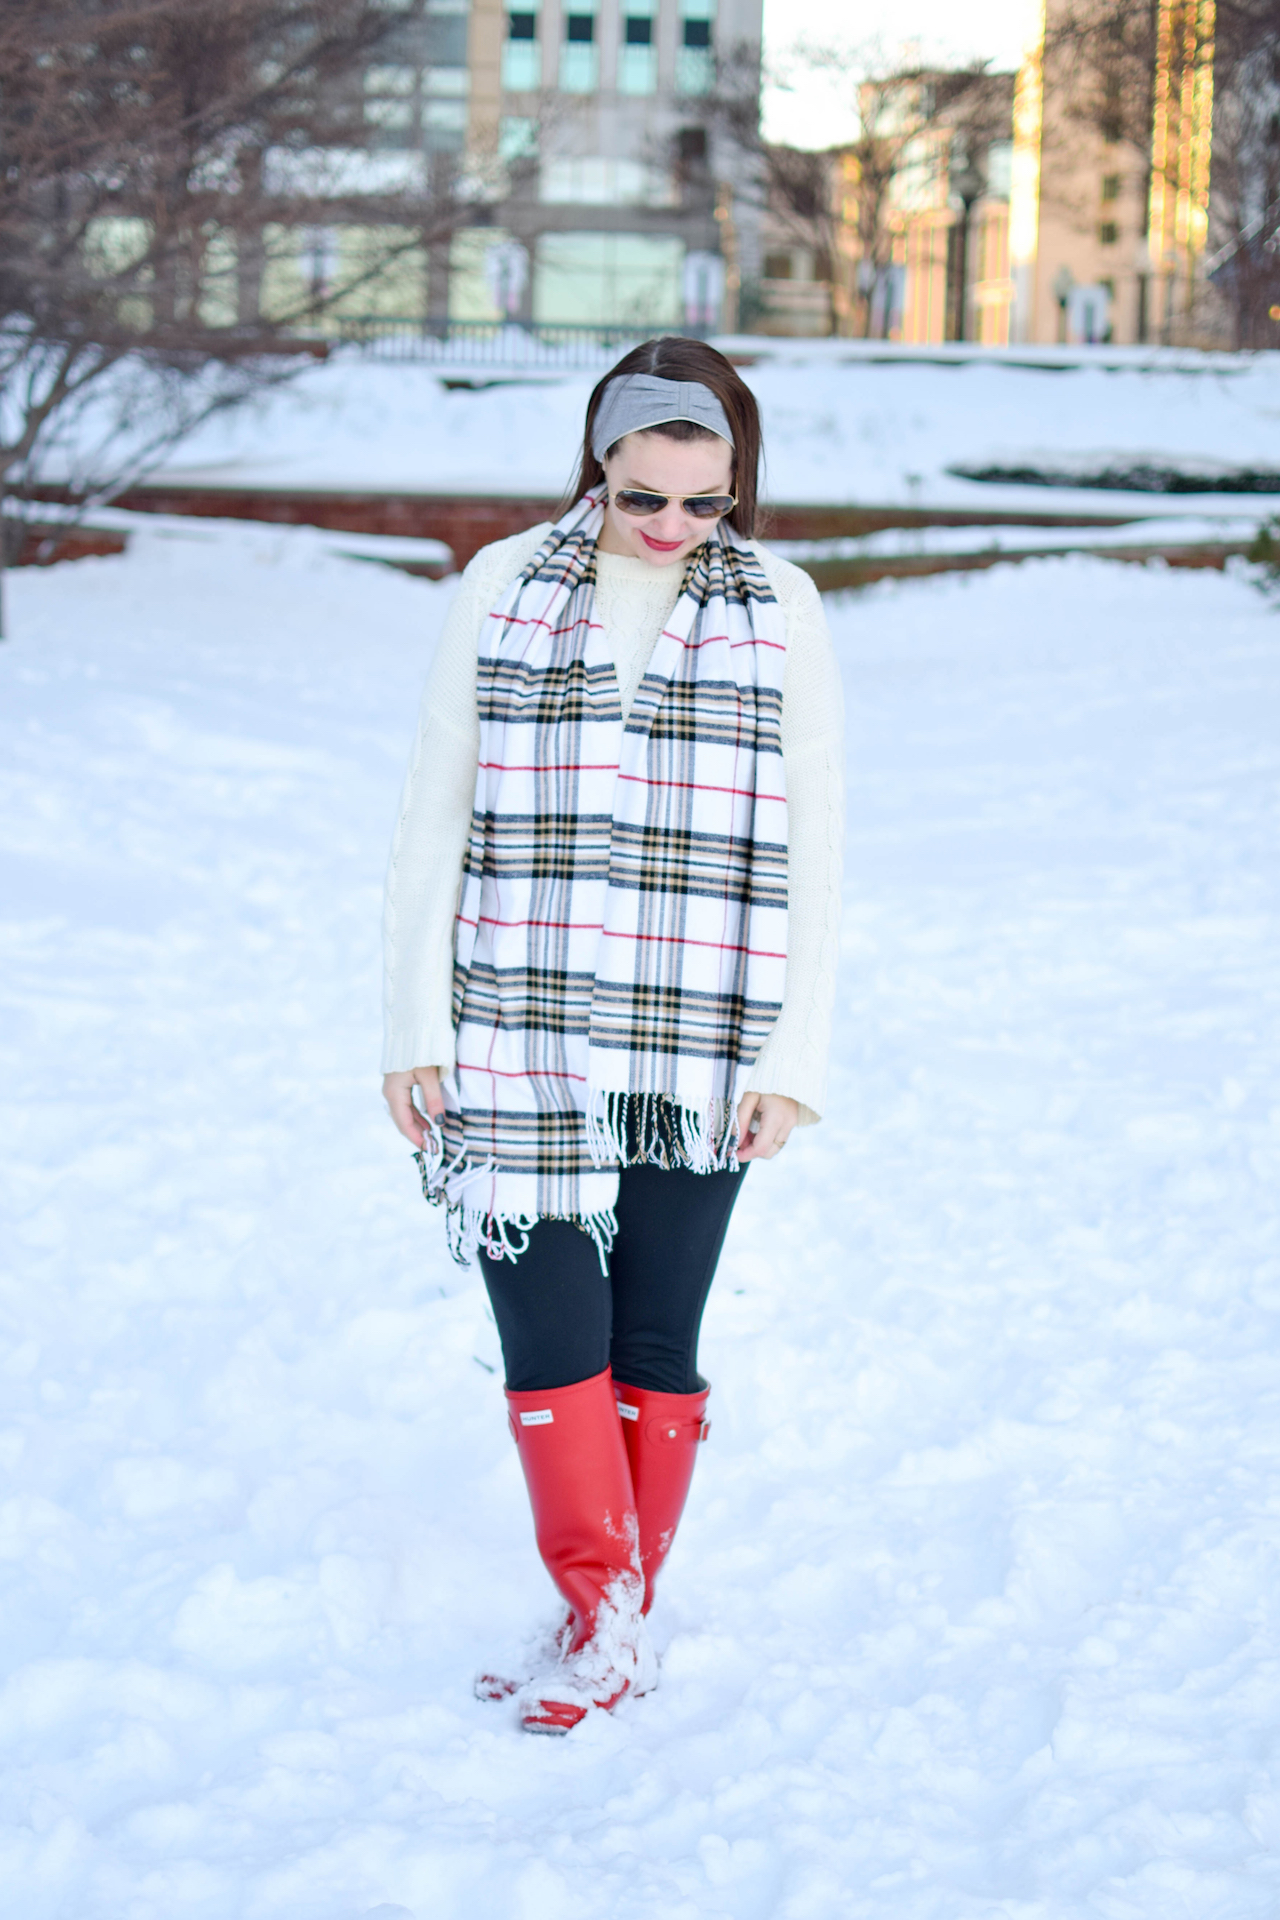 snow day outfit ideas